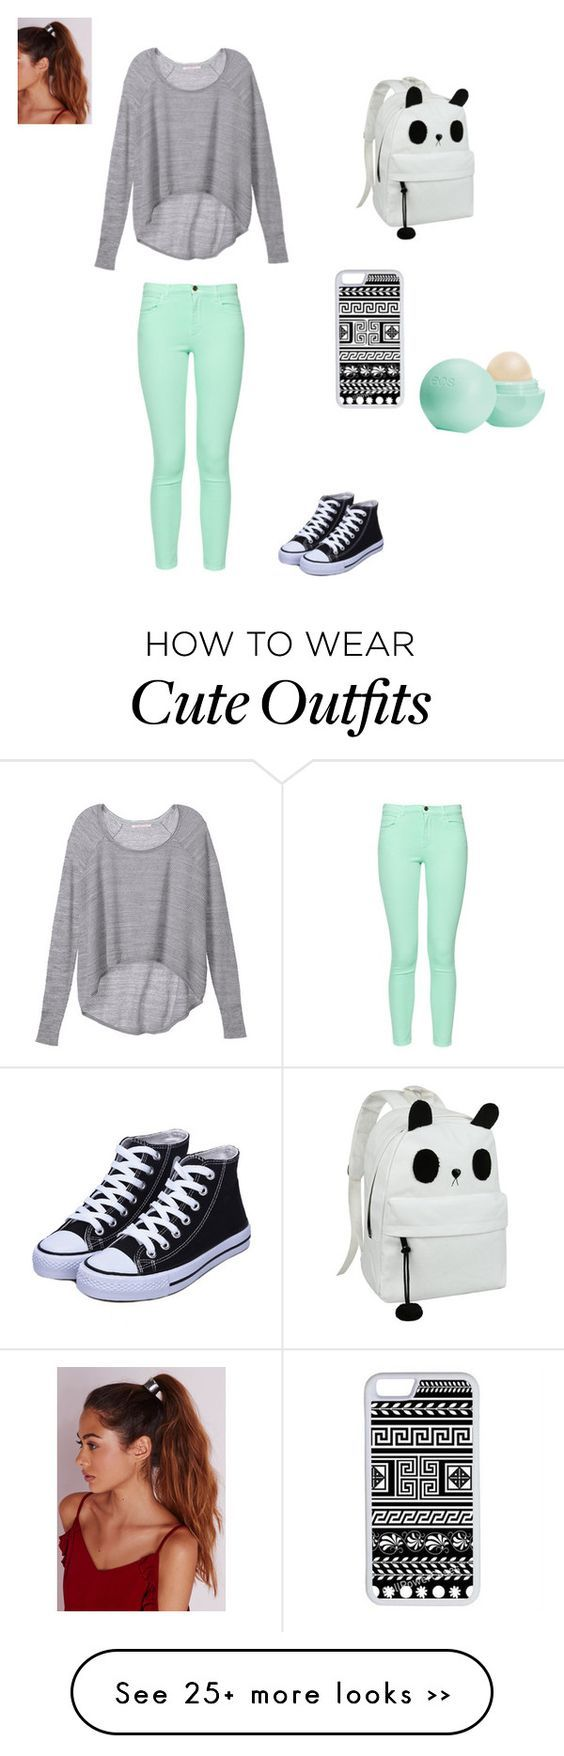 18 Cute Outfits For School – Back-to-School Outfit Ideas recommend